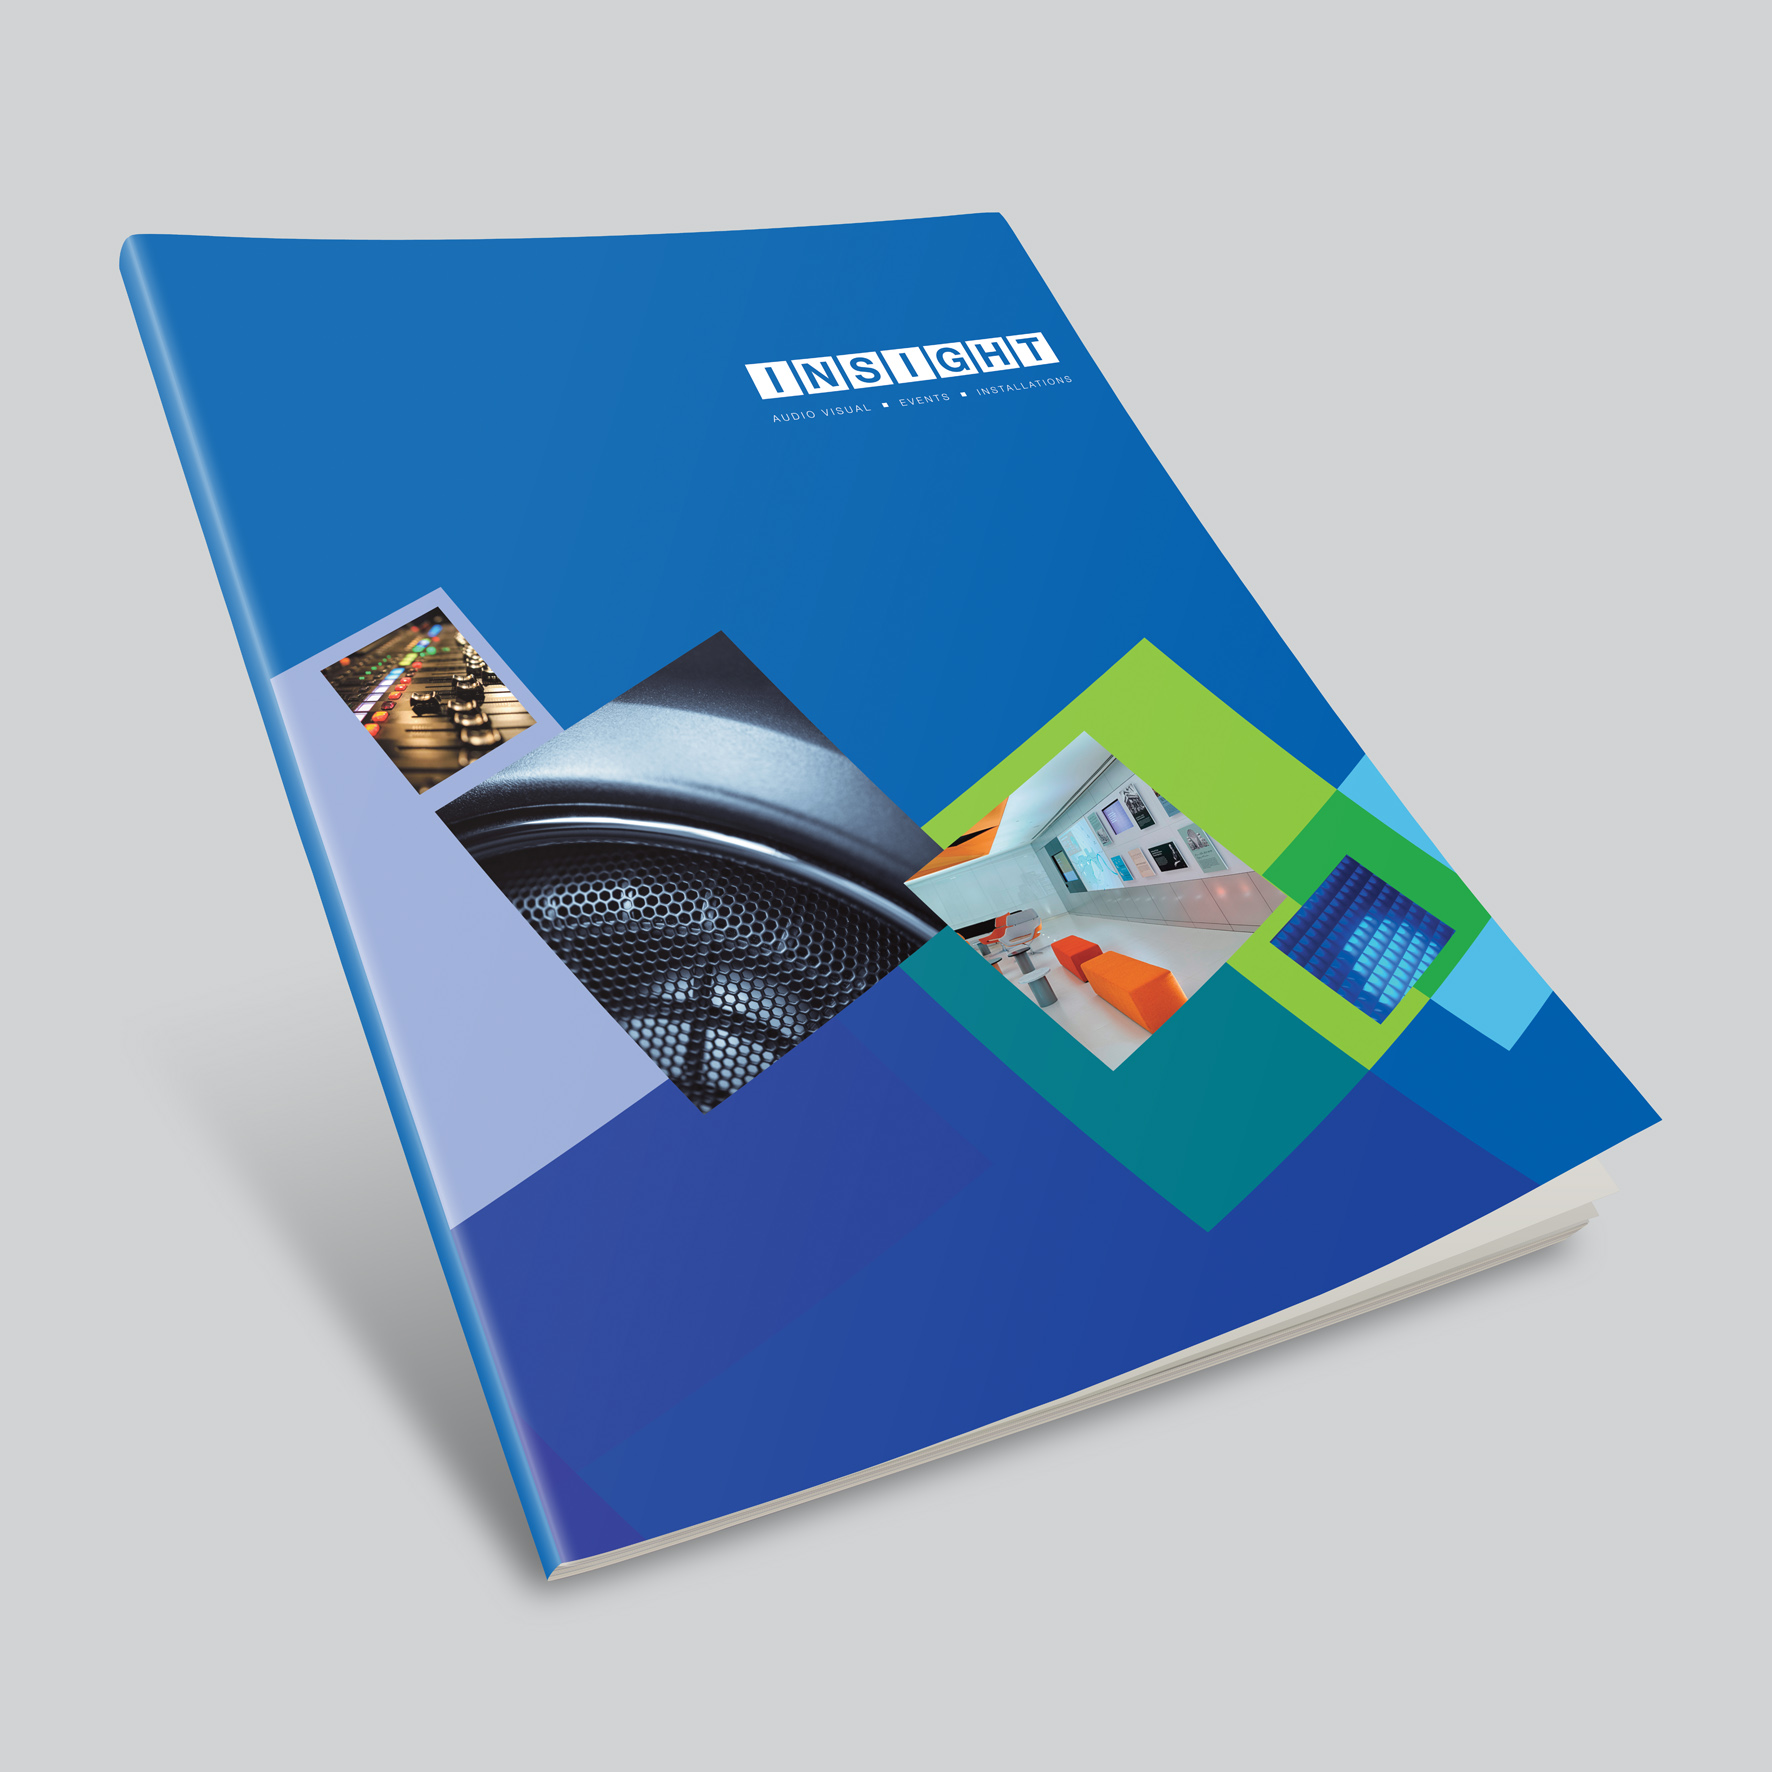 Insight branding and brochure